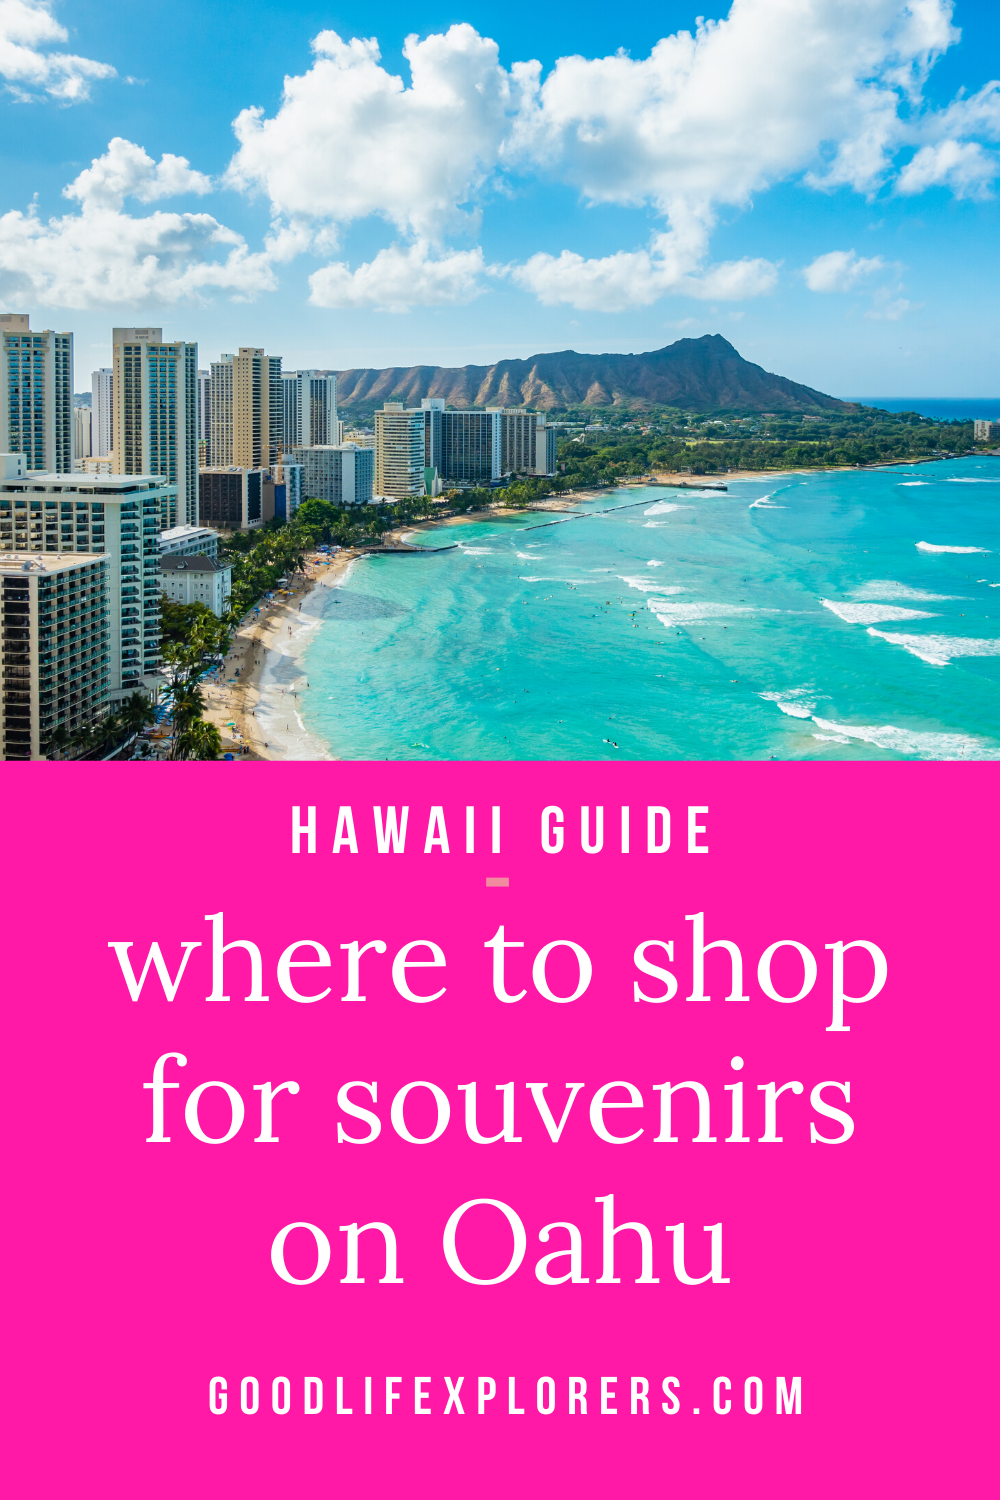 Where to shop for souvenirs in Oahu, Hawaii in 2020